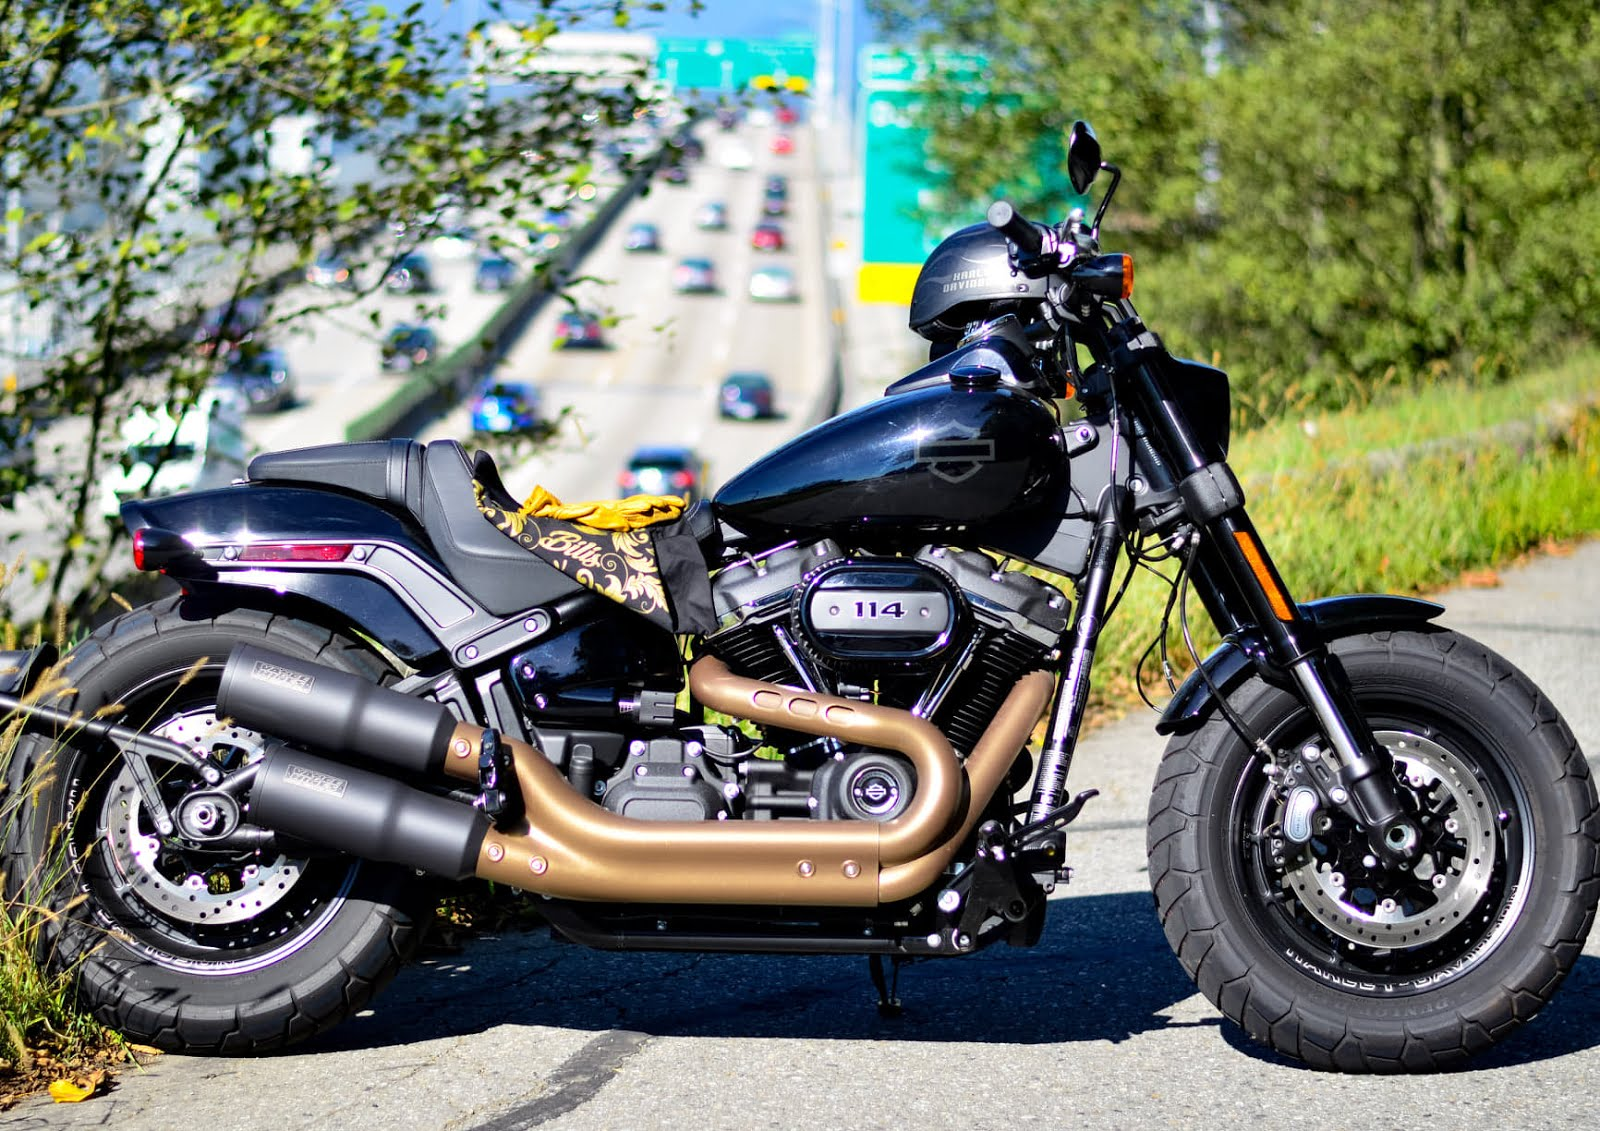 Customer Review of the 2018 Harley-Davidson Softail Fat Bob